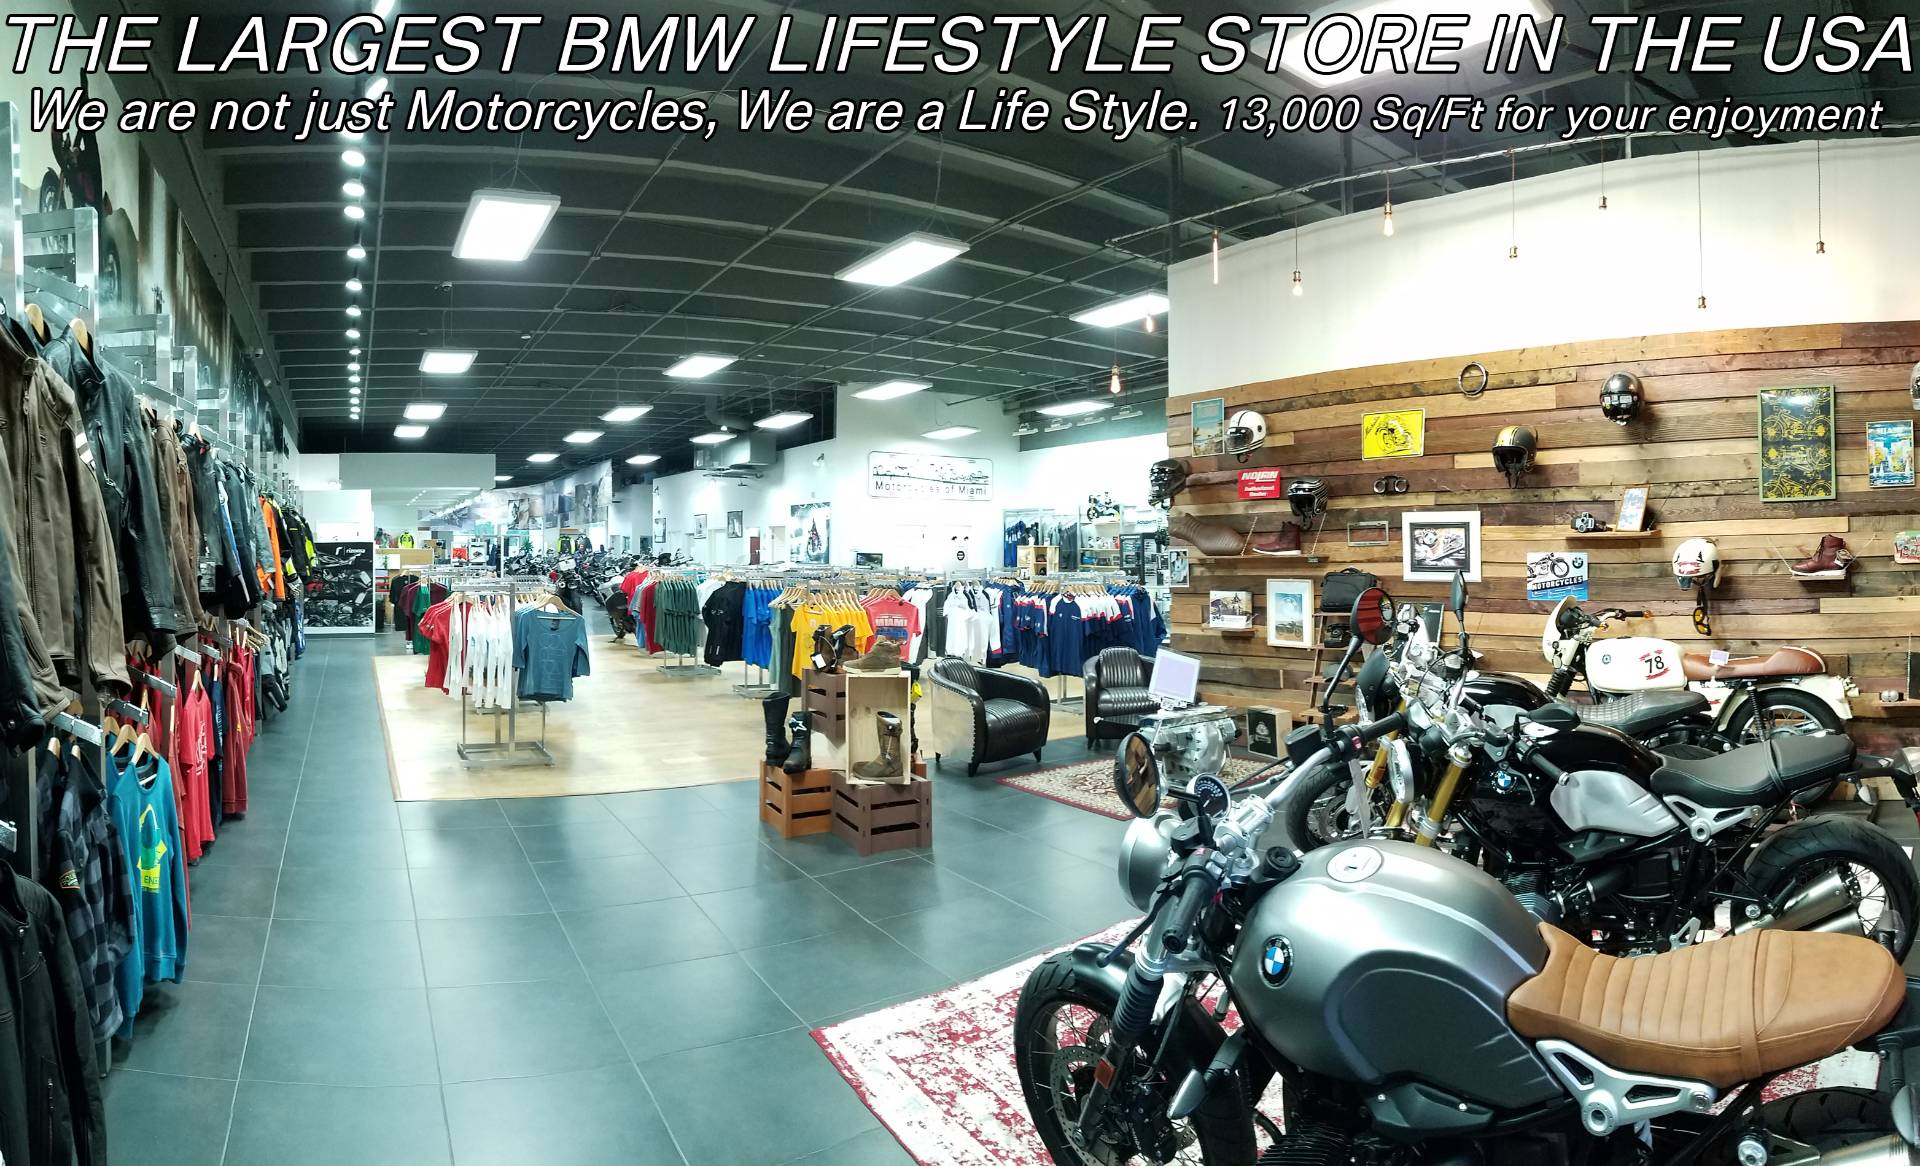 Used 2011 BMW R 1200 GS For Sale, Pre Owned BMW R 1200GS For Sale, Pre-Owned BMW Motorcycle R1200GS, BMW Motorcycle, GS, BMW - Photo 23